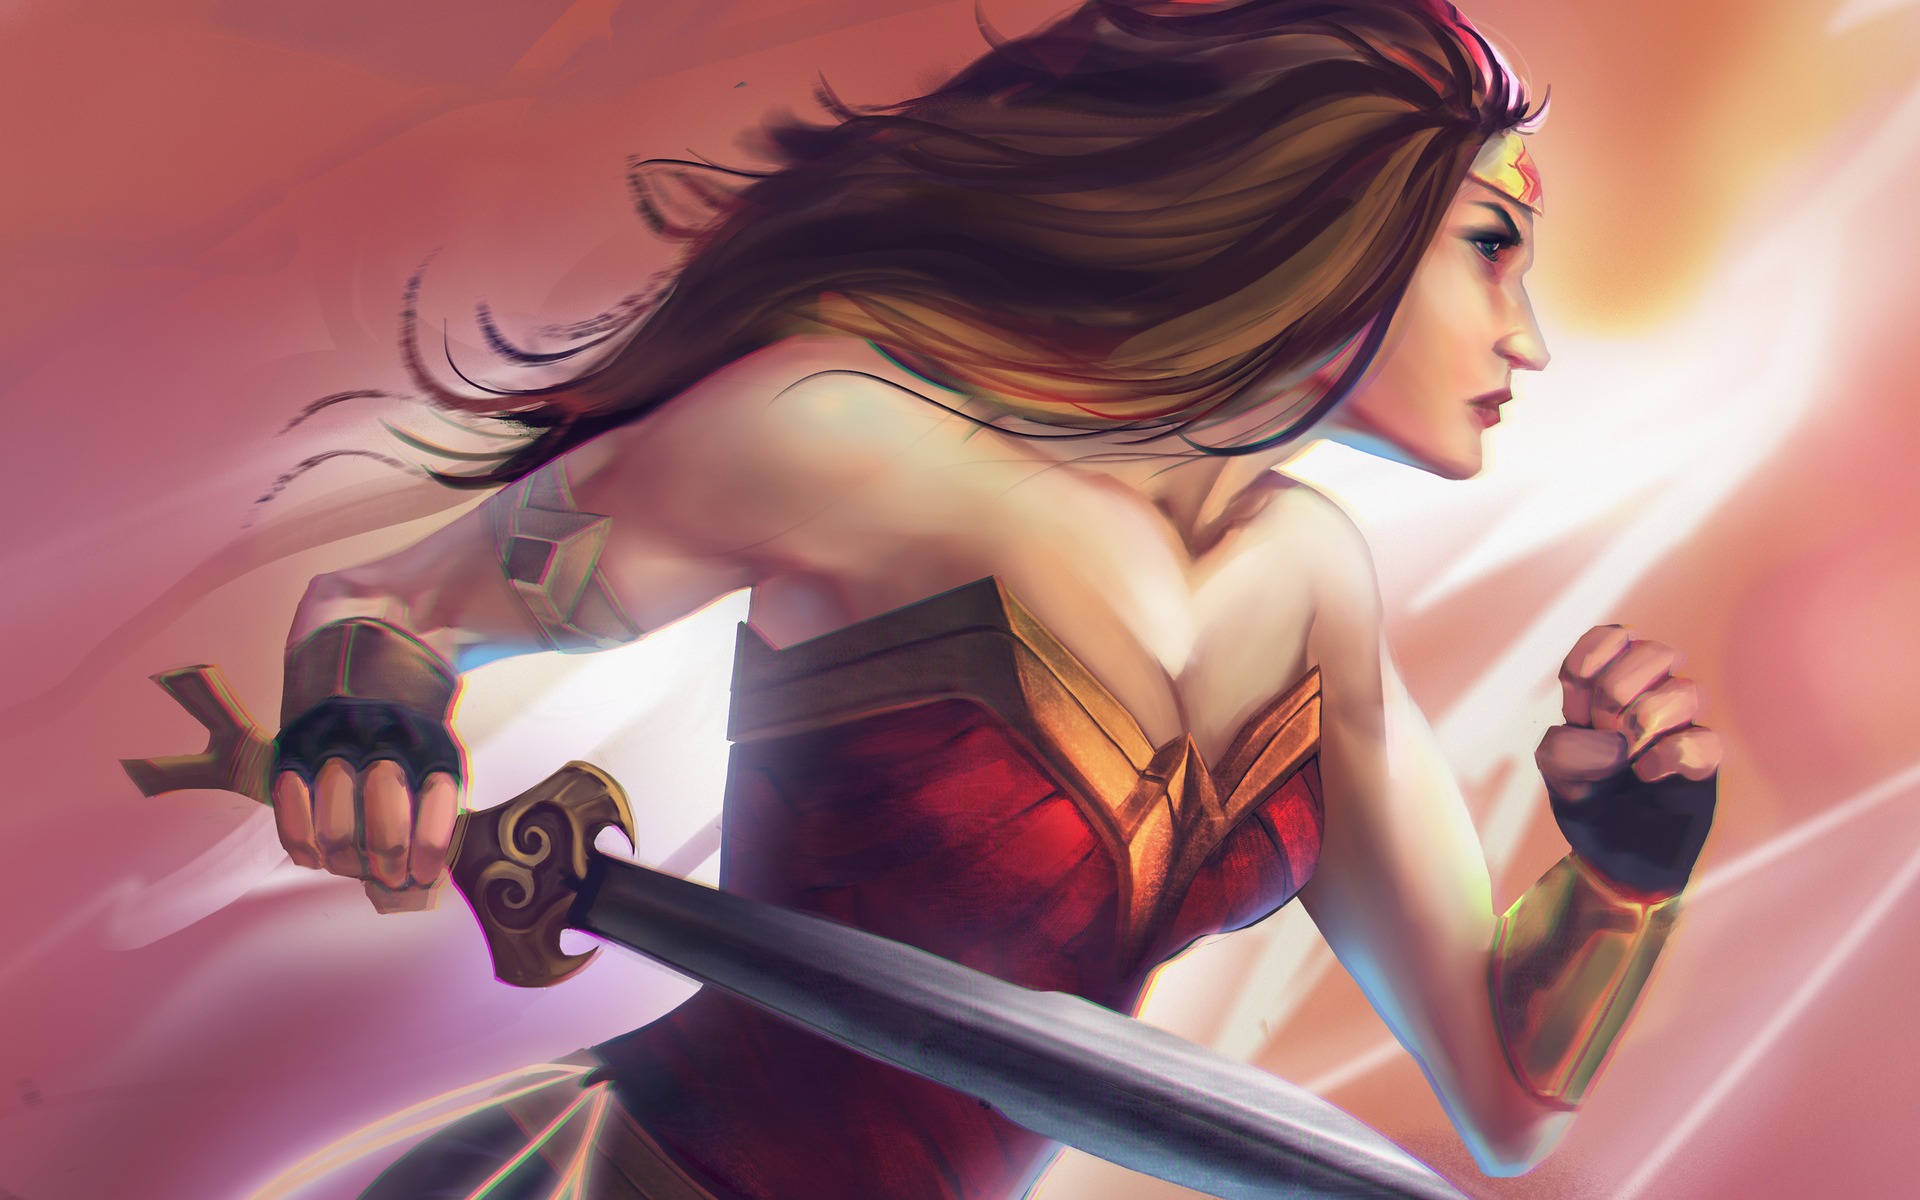 wonder-woman-paint-art-yl.jpg